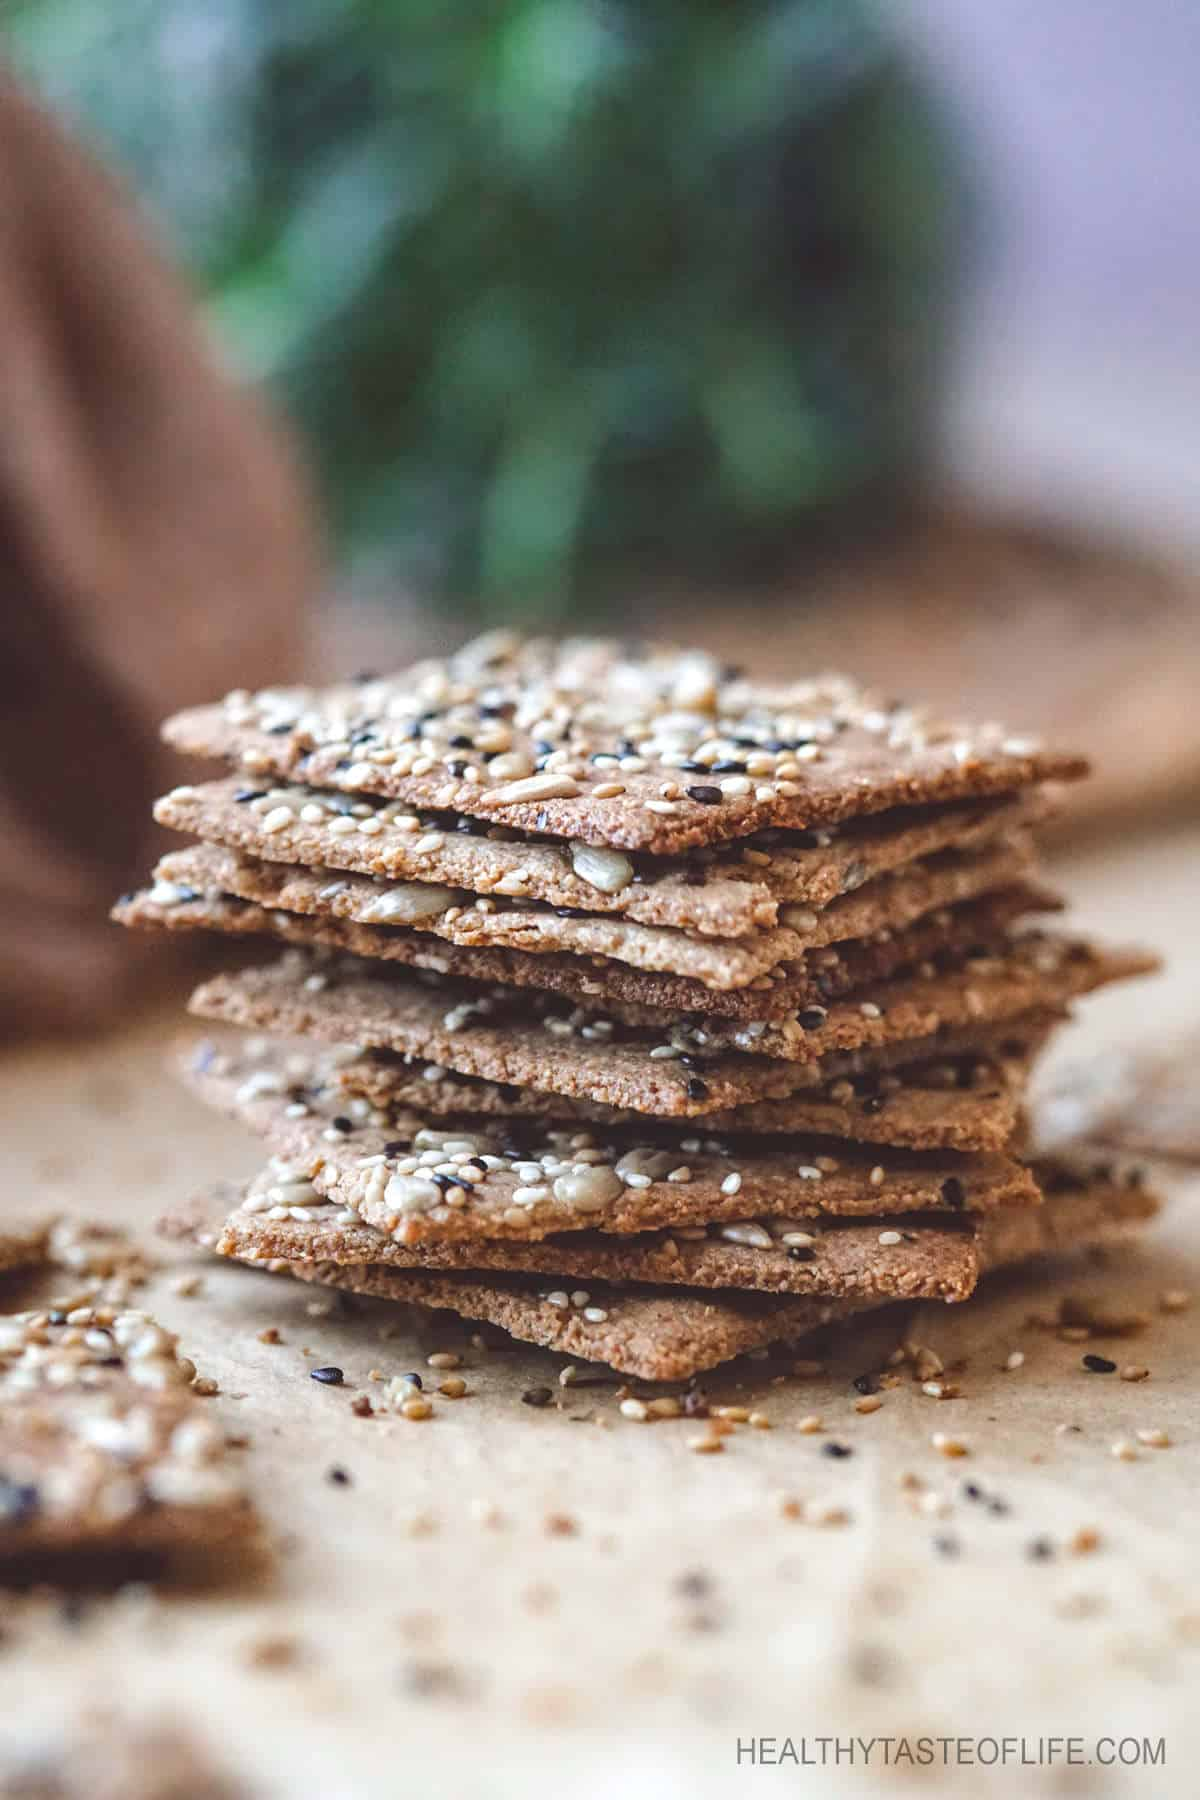 Keto seed crackers recipe (dairy free vegan) that is suitable for keto, paleo and vegan eaters. Use  these keto seed crackers as a low carb snack, or served along with your salad or soup.  #ketocrackers #lowcrabcrackers